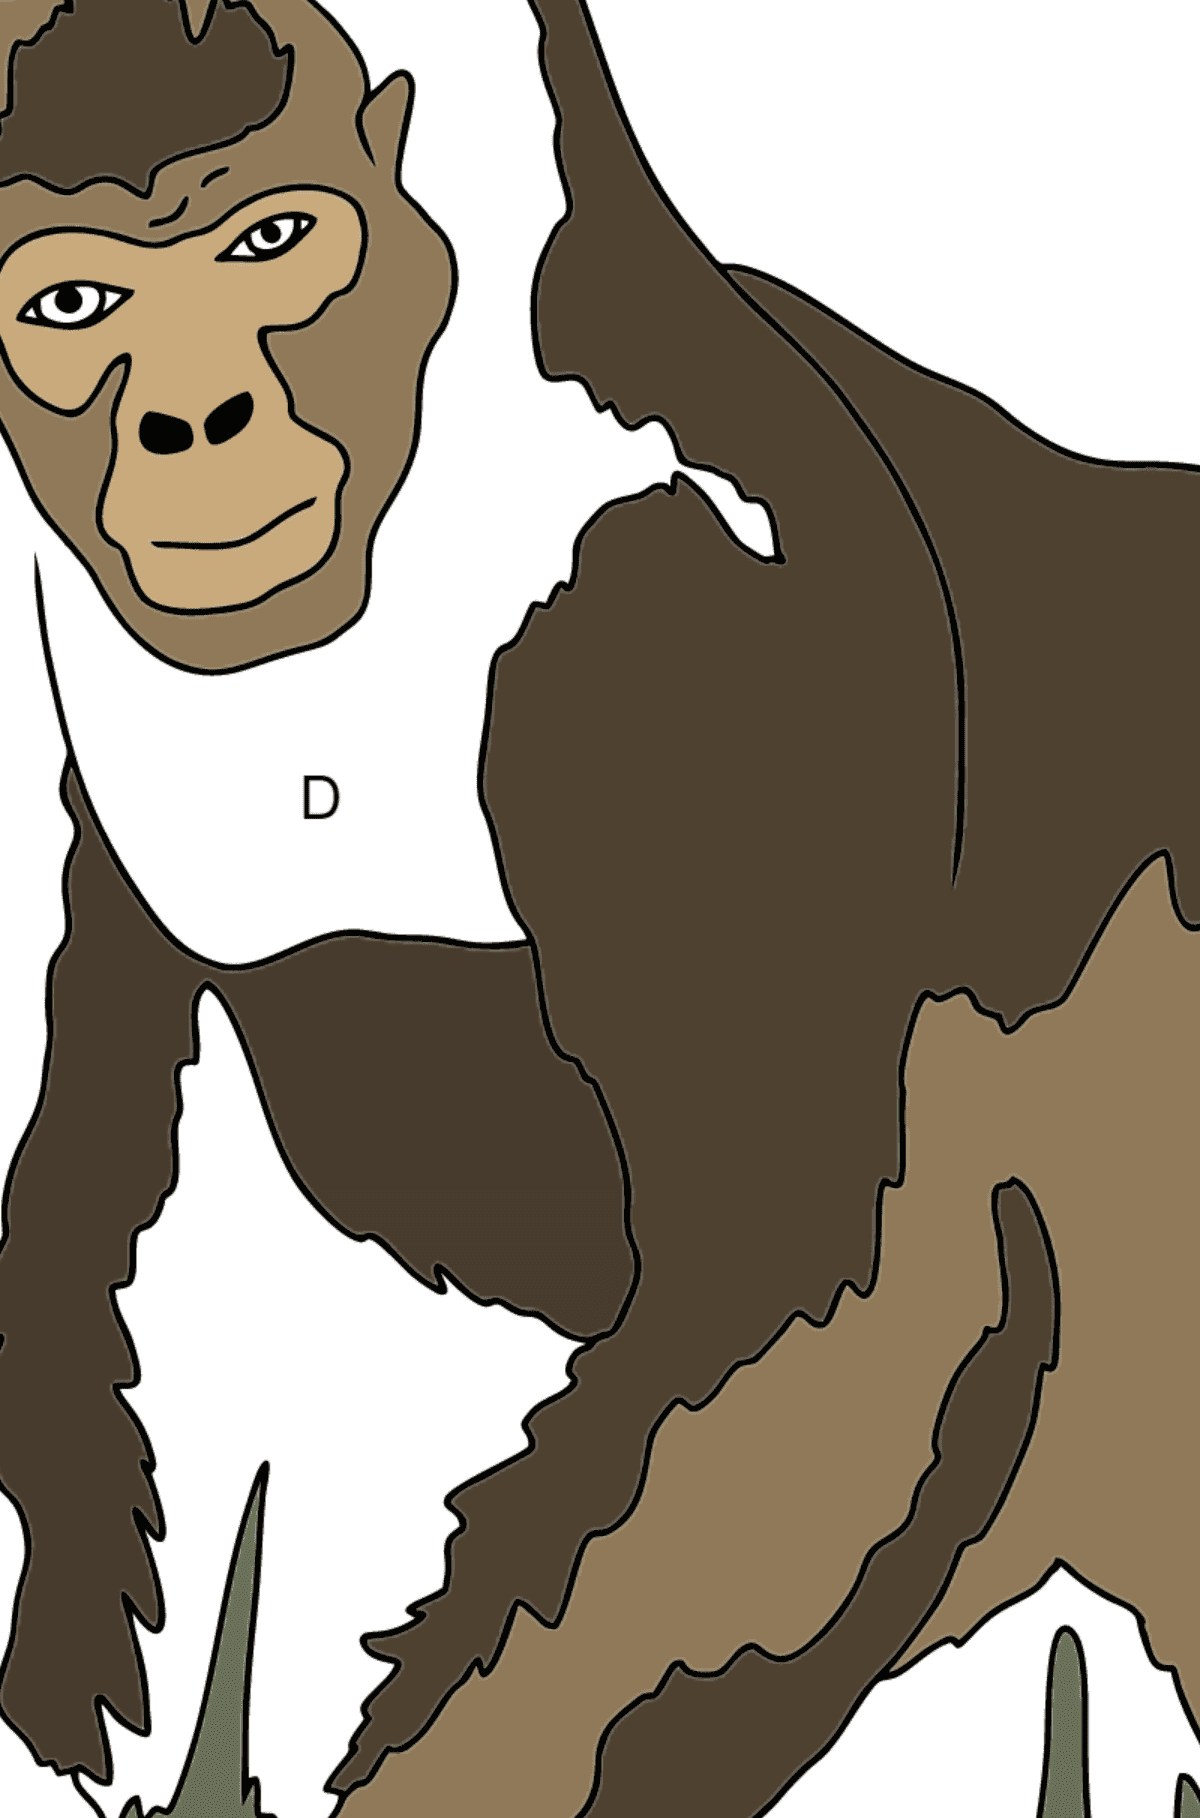 Coloring Page - A Real Gorilla - Coloring by Letters for Kids